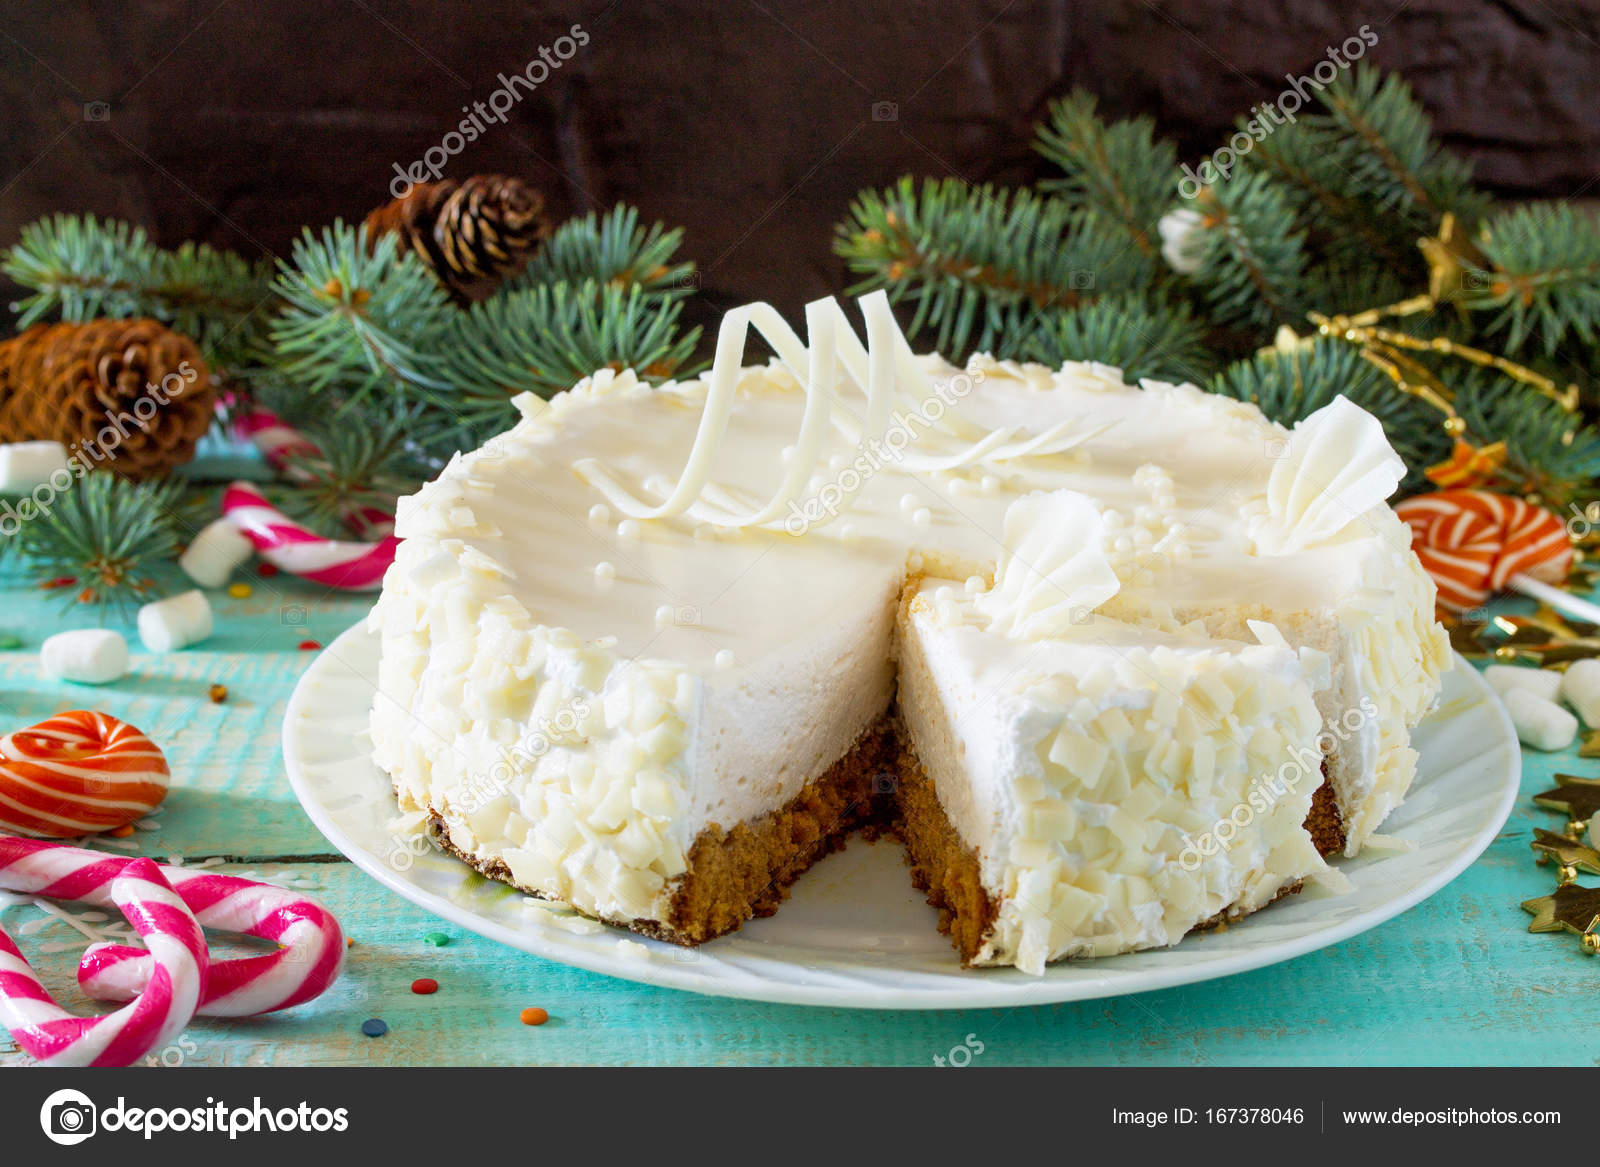 Birthday Cake With White Chocolate Icing On A Festive Christmas